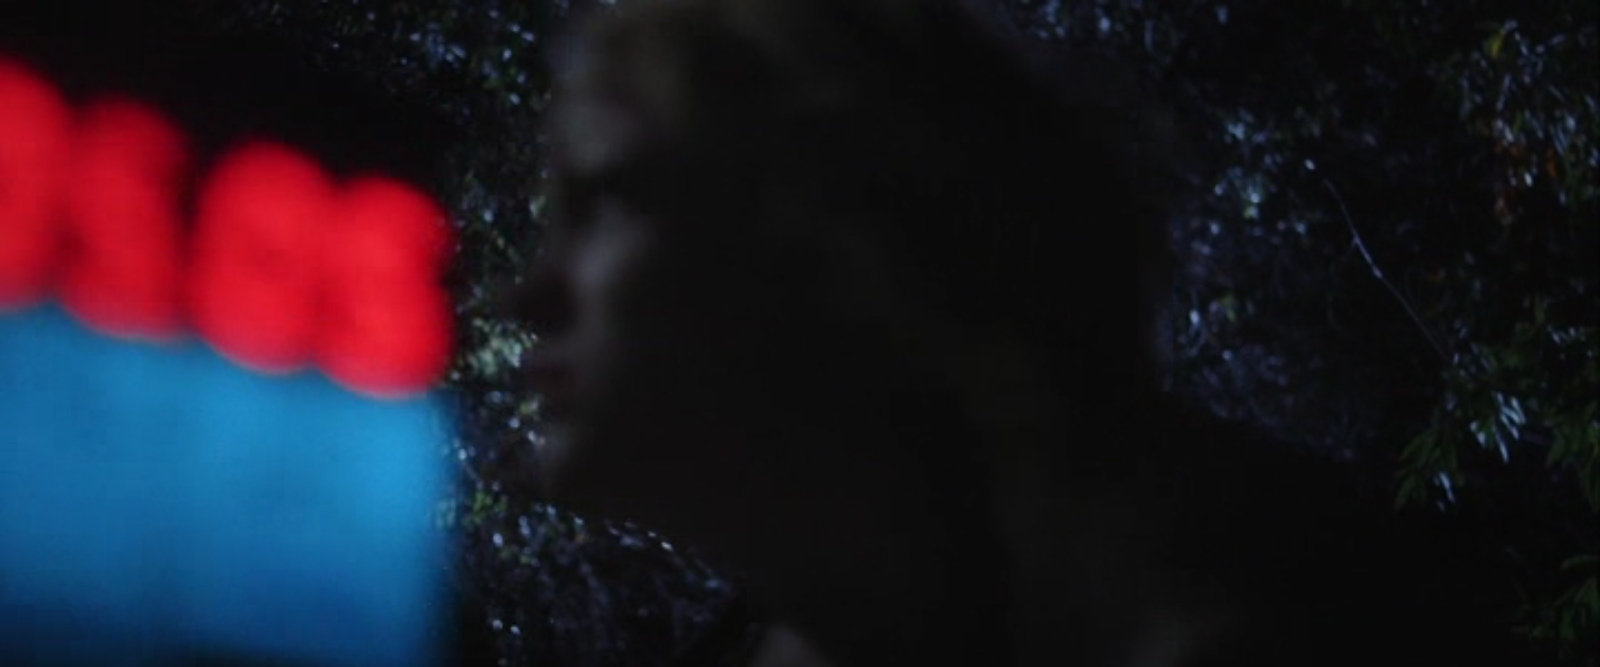 A blurry image of Beth and Anna fighting in the woods. A filmmaker's clapperboard intrudes from the left side of the frame.